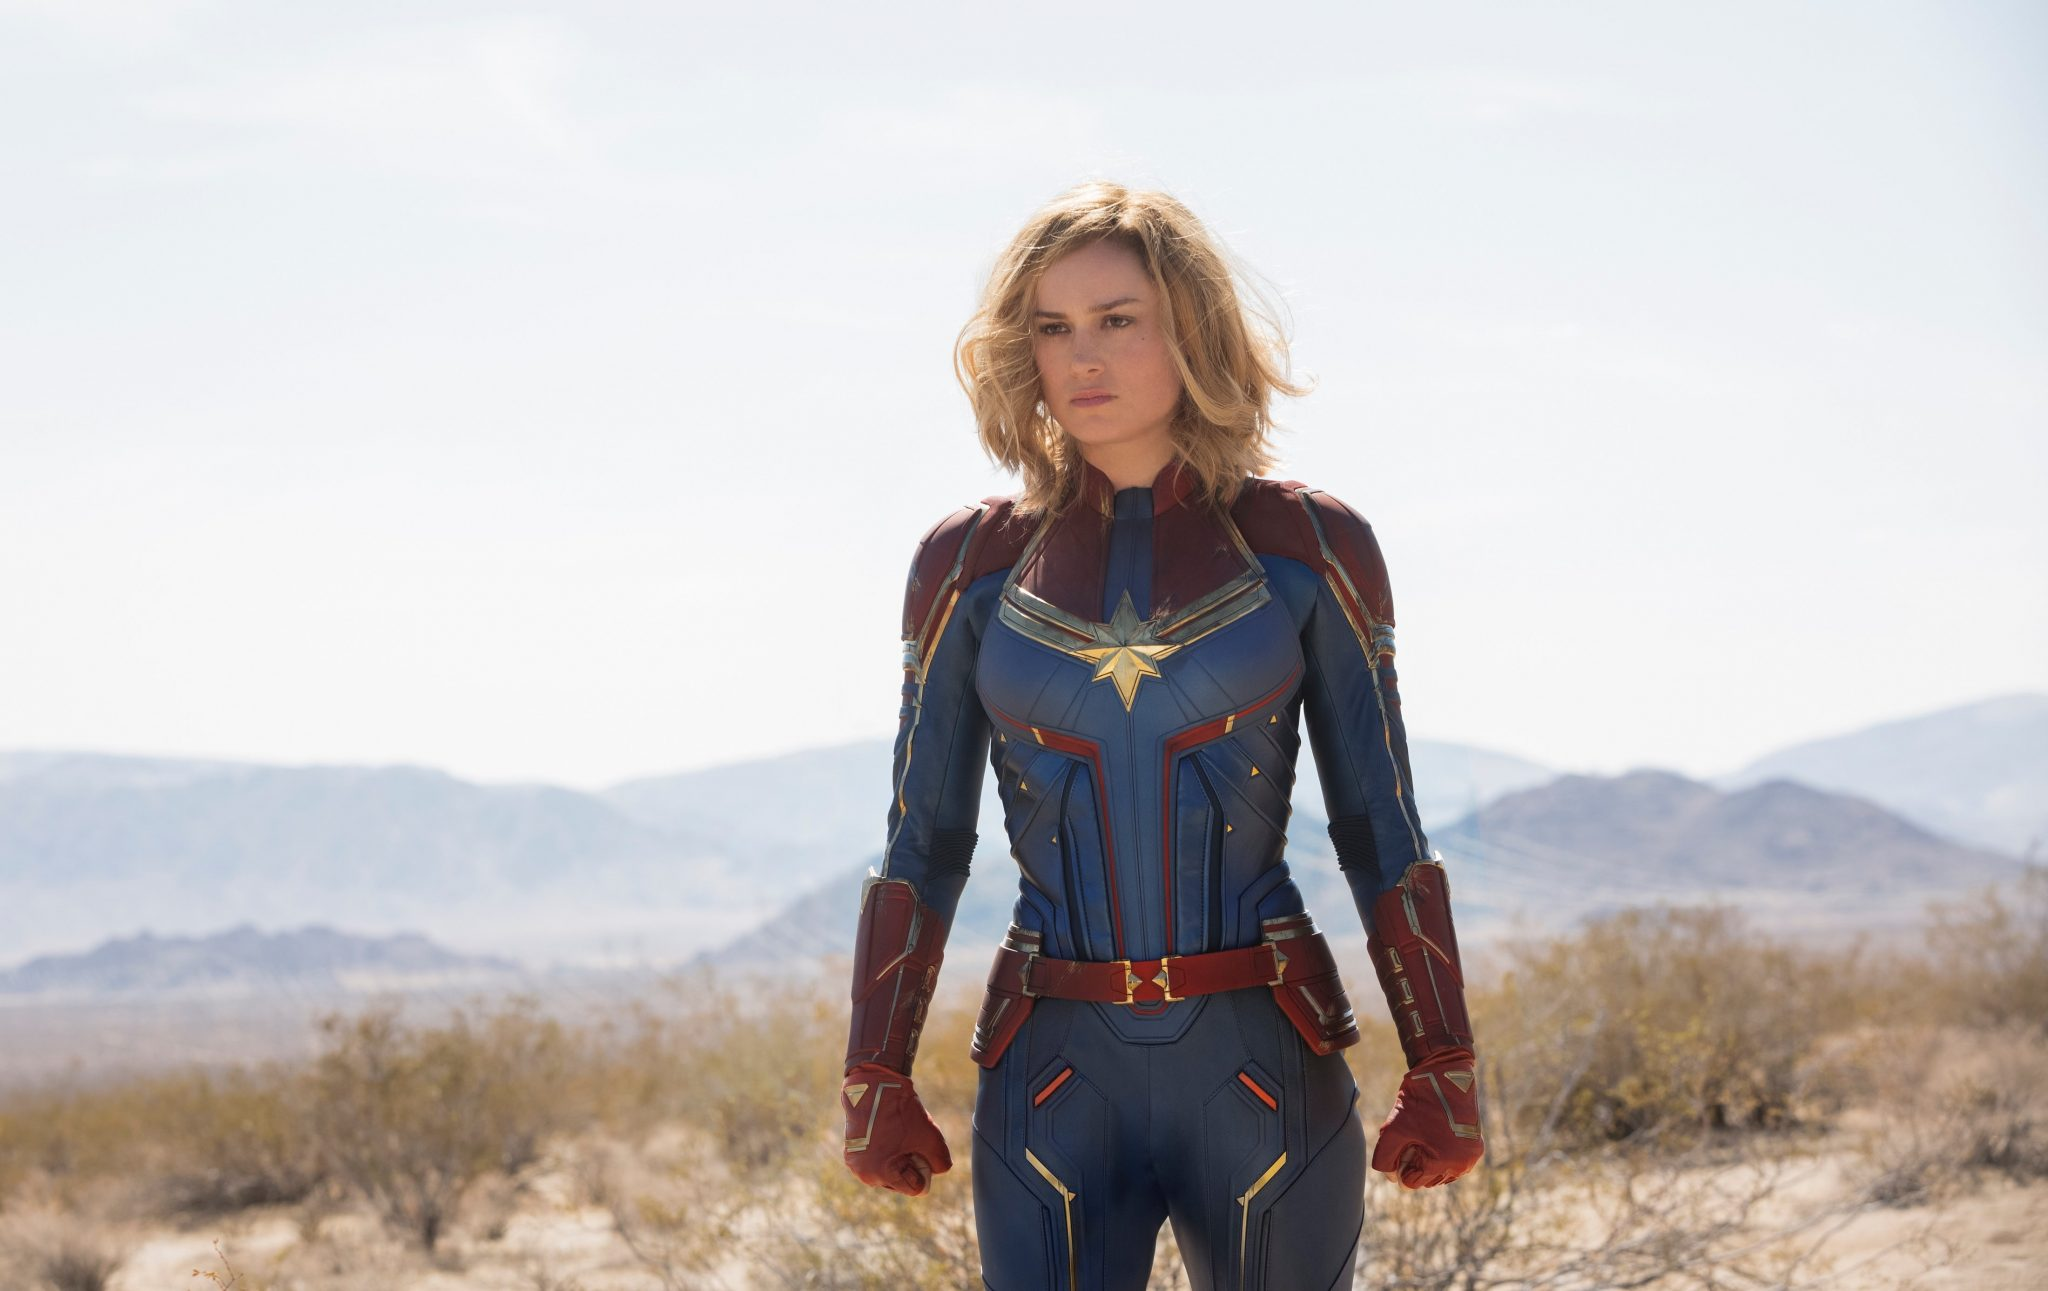 Marvel Studios' Captain Marvel at the El Capitan